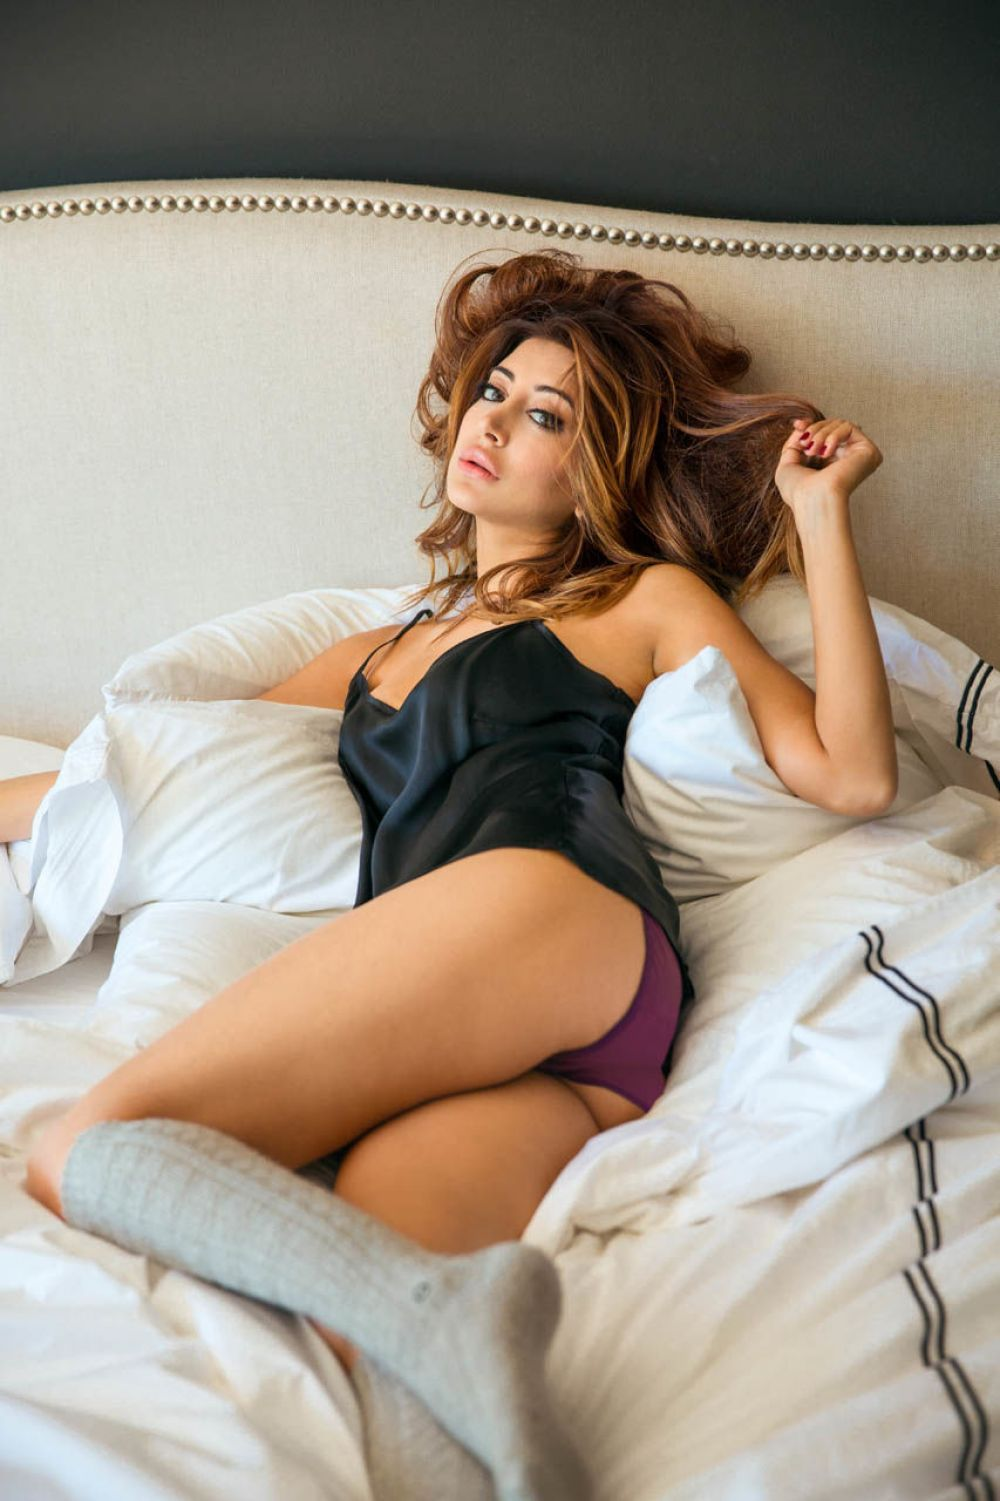 2019 Noureen DeWulf nudes (16 photo), Tits, Leaked, Boobs, butt 2017